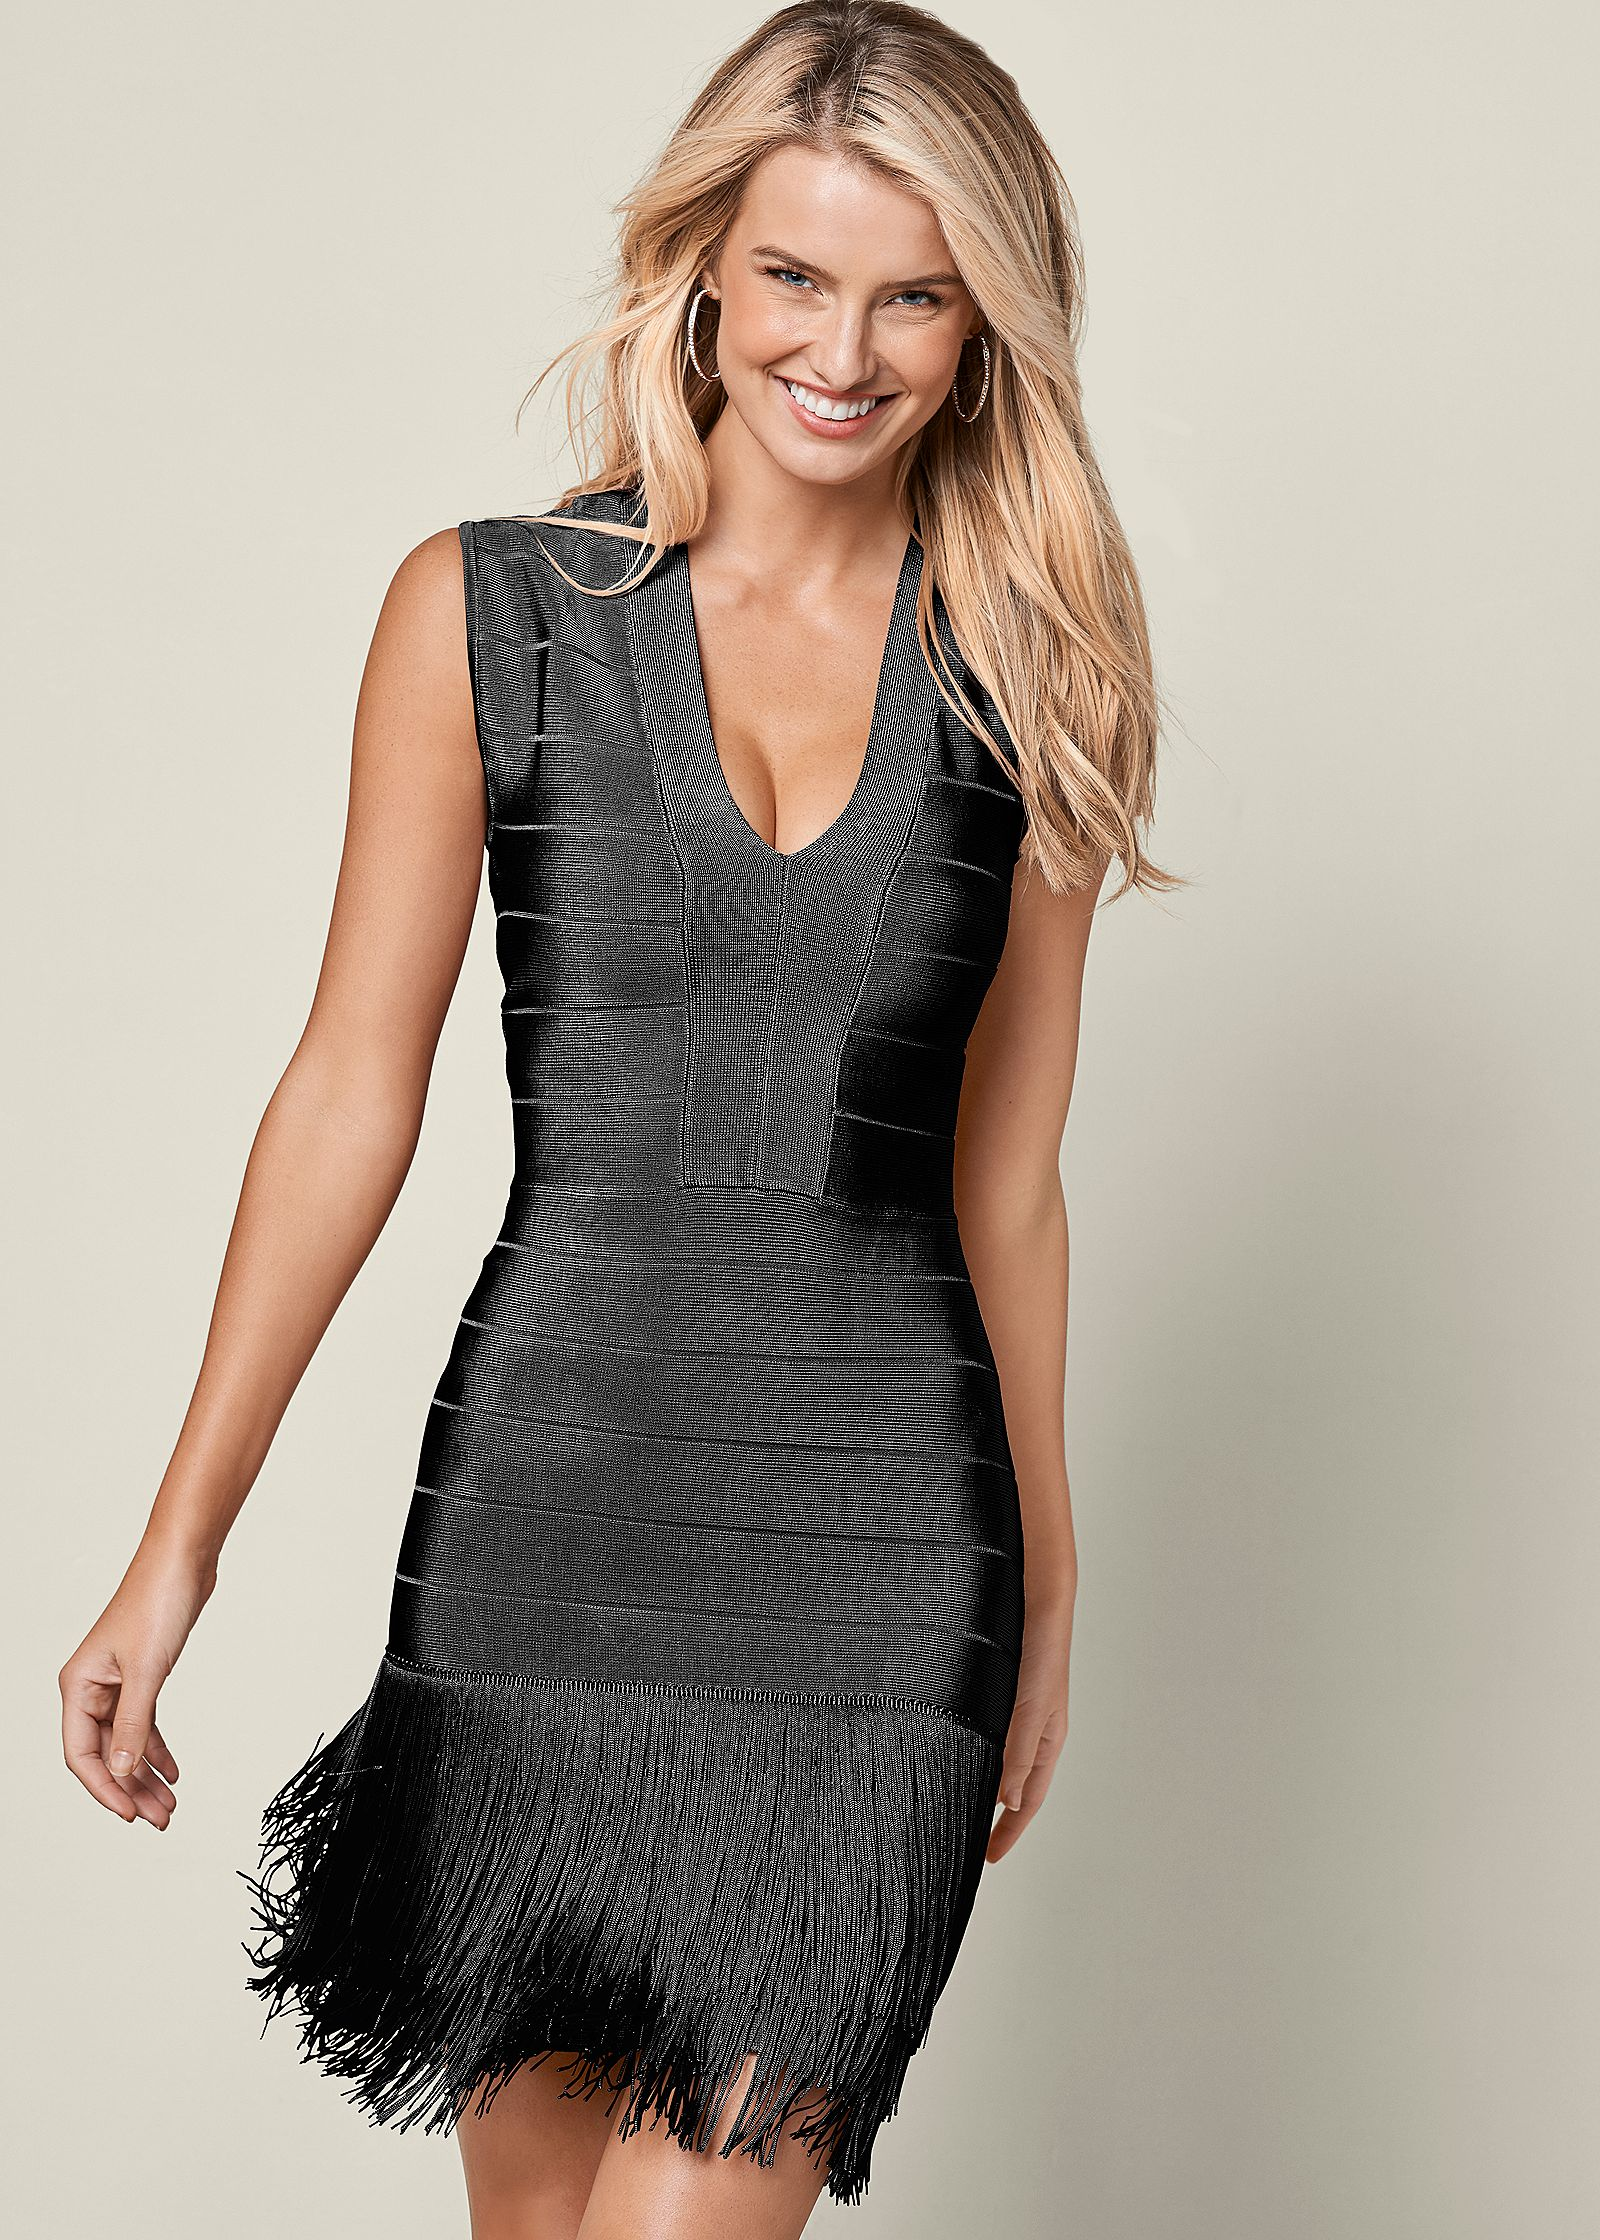 Evening Dresses for Holiday Parties